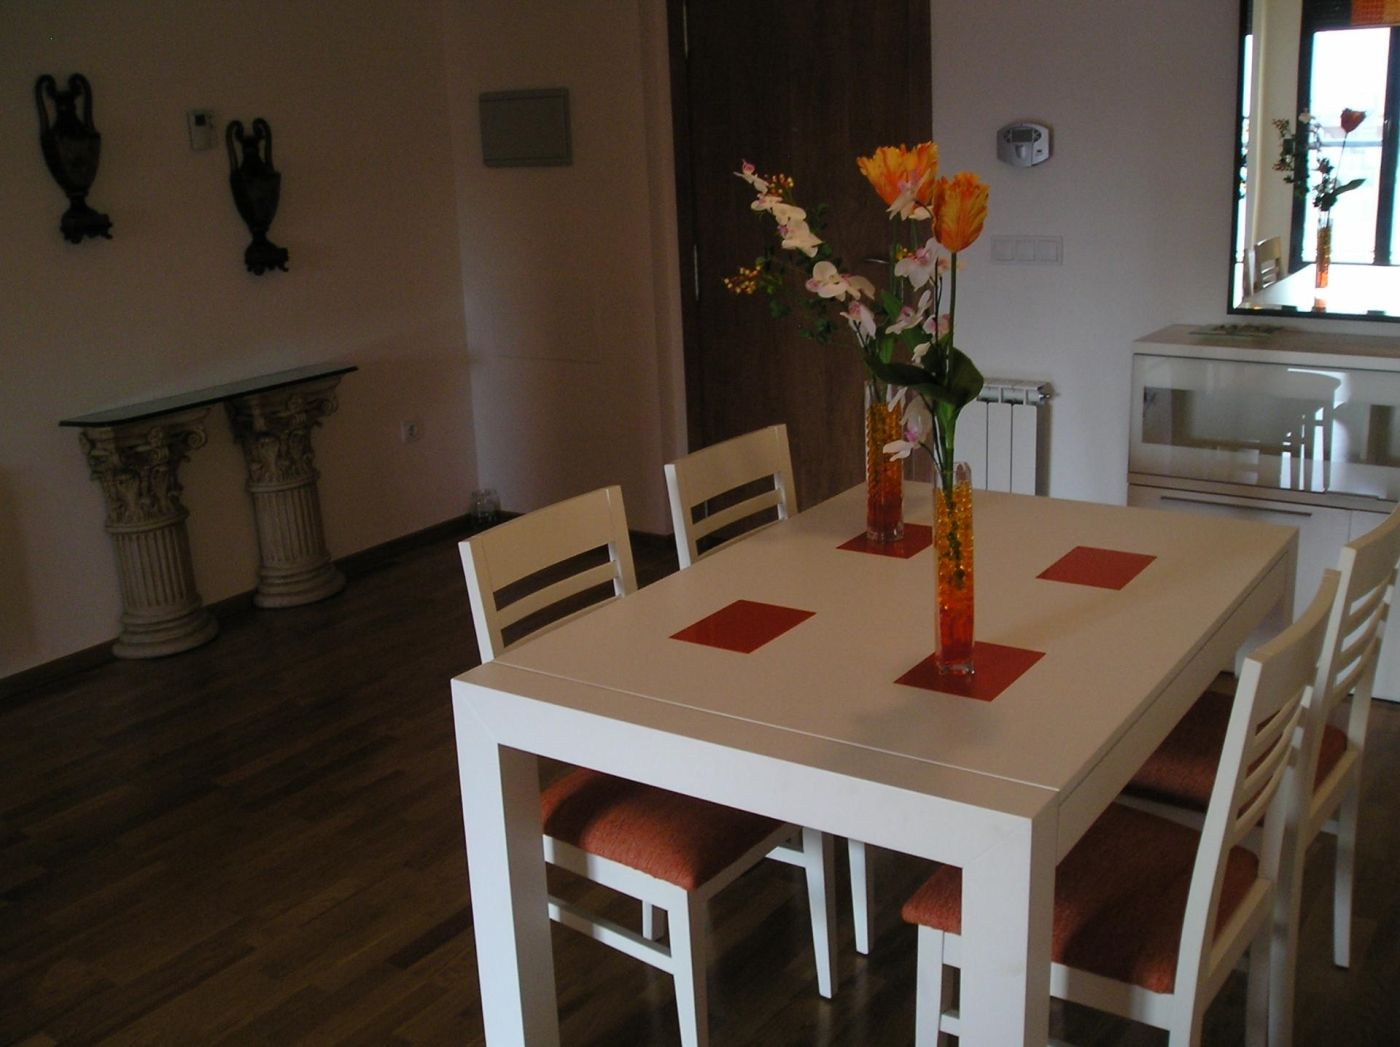 Location Appartement à Calle joan monleón bennacer, 46760, 4. Completamente amueblado